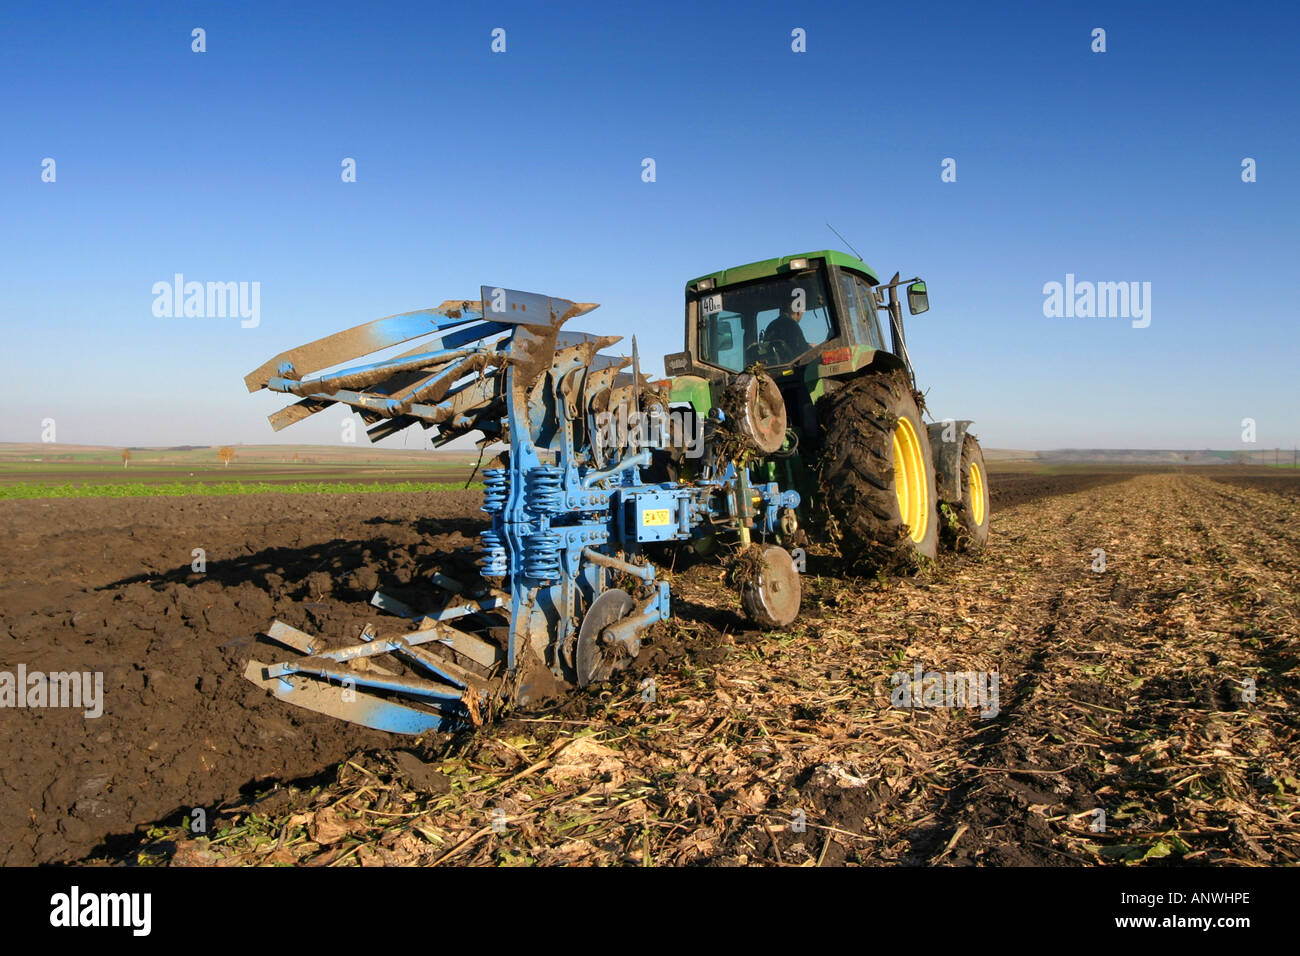 Tractor with plough in a field - Stock Image